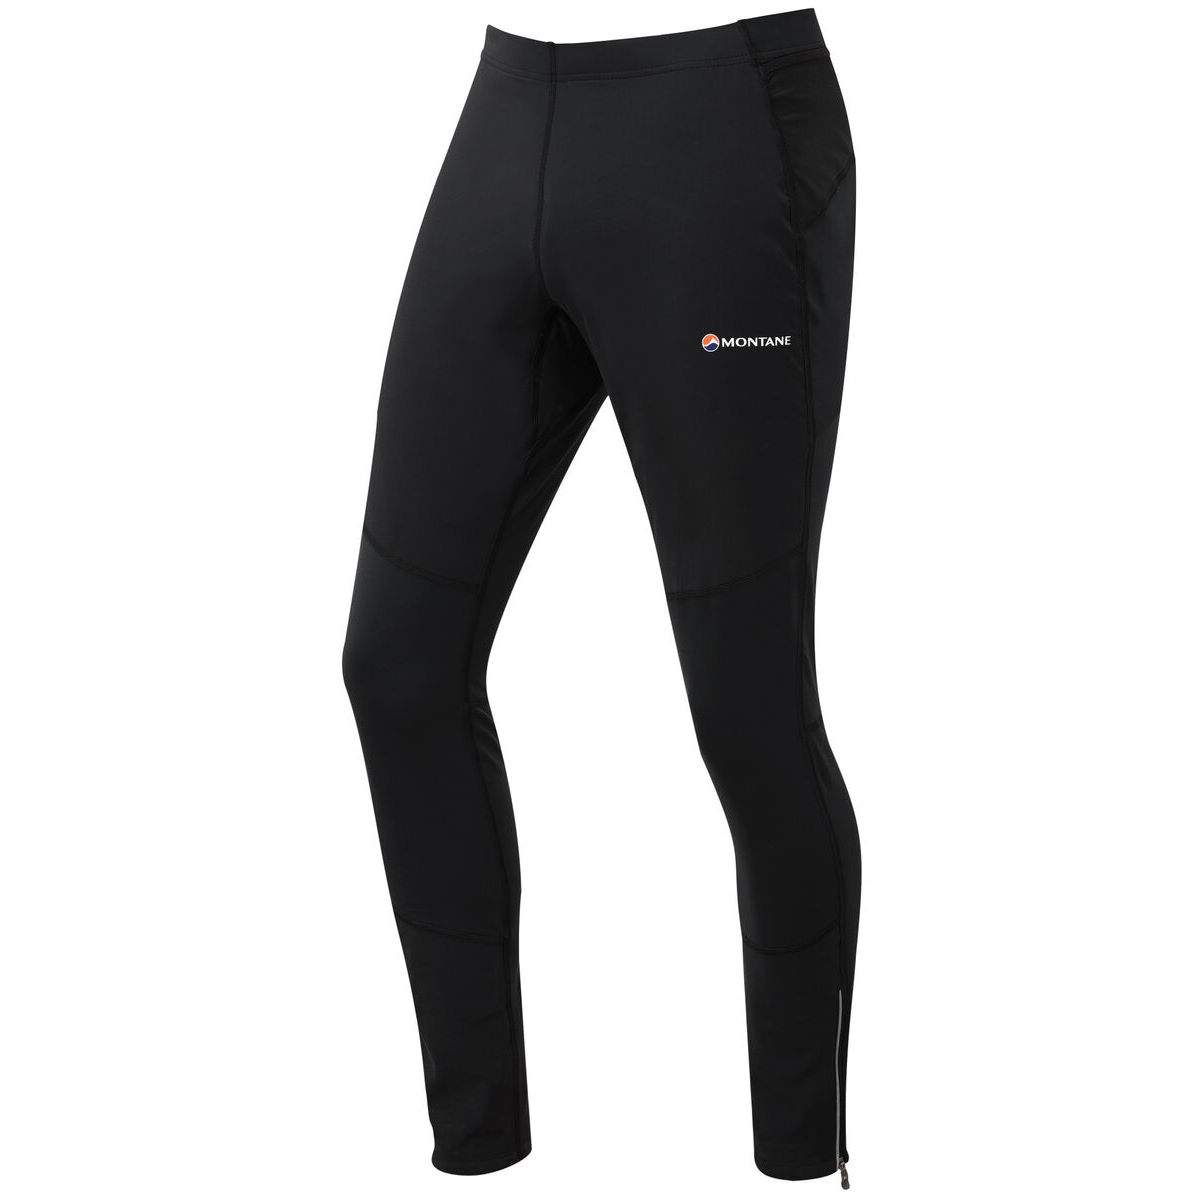 Montane Montane Trail Series Thermal Tights   Tights